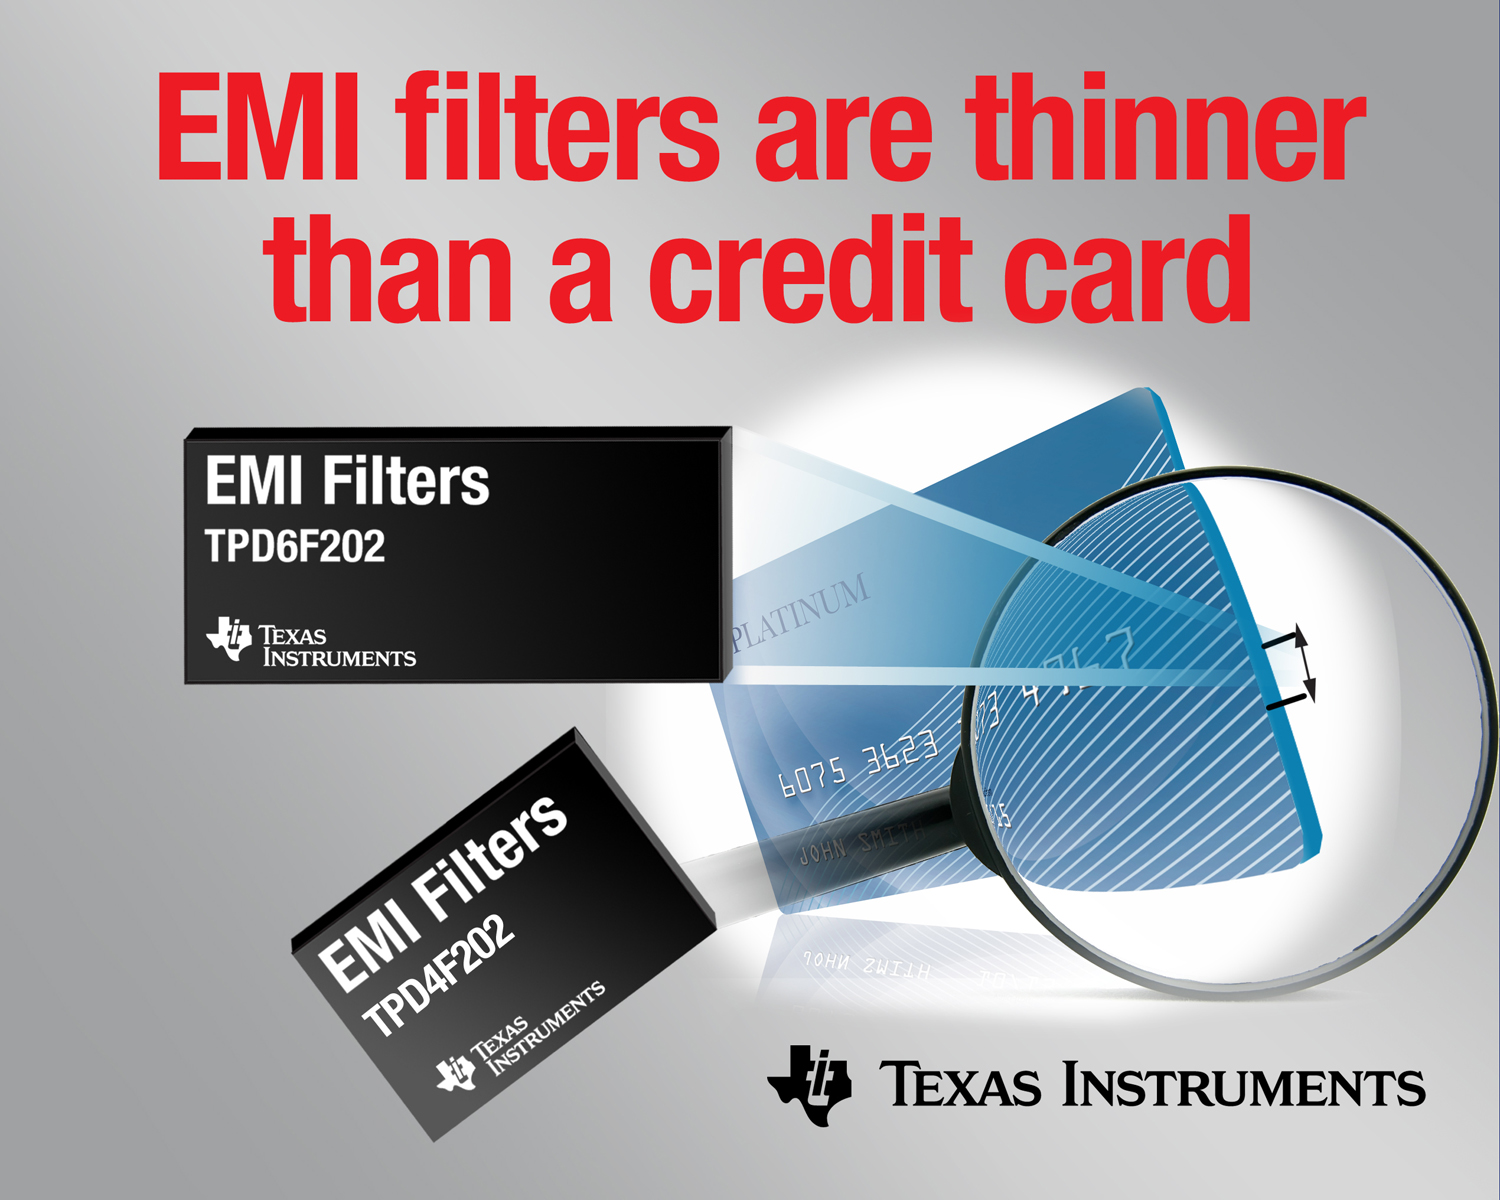 Texas Instruments Delivers Thinnest EMI Filters with Highest ESD Performance